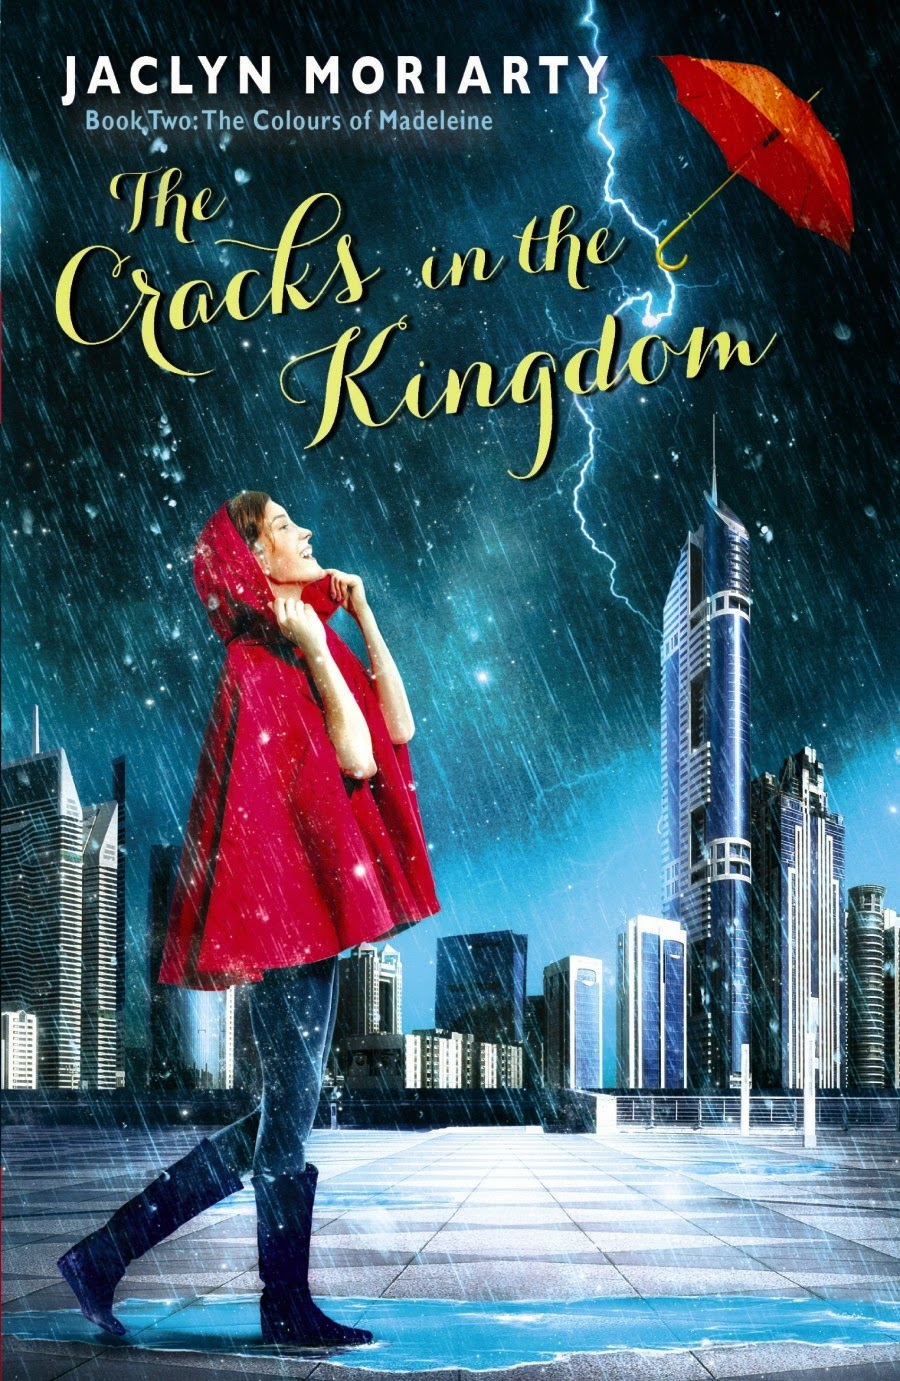 https://www.goodreads.com/book/show/18371573-the-cracks-in-the-kingdom?ac=1